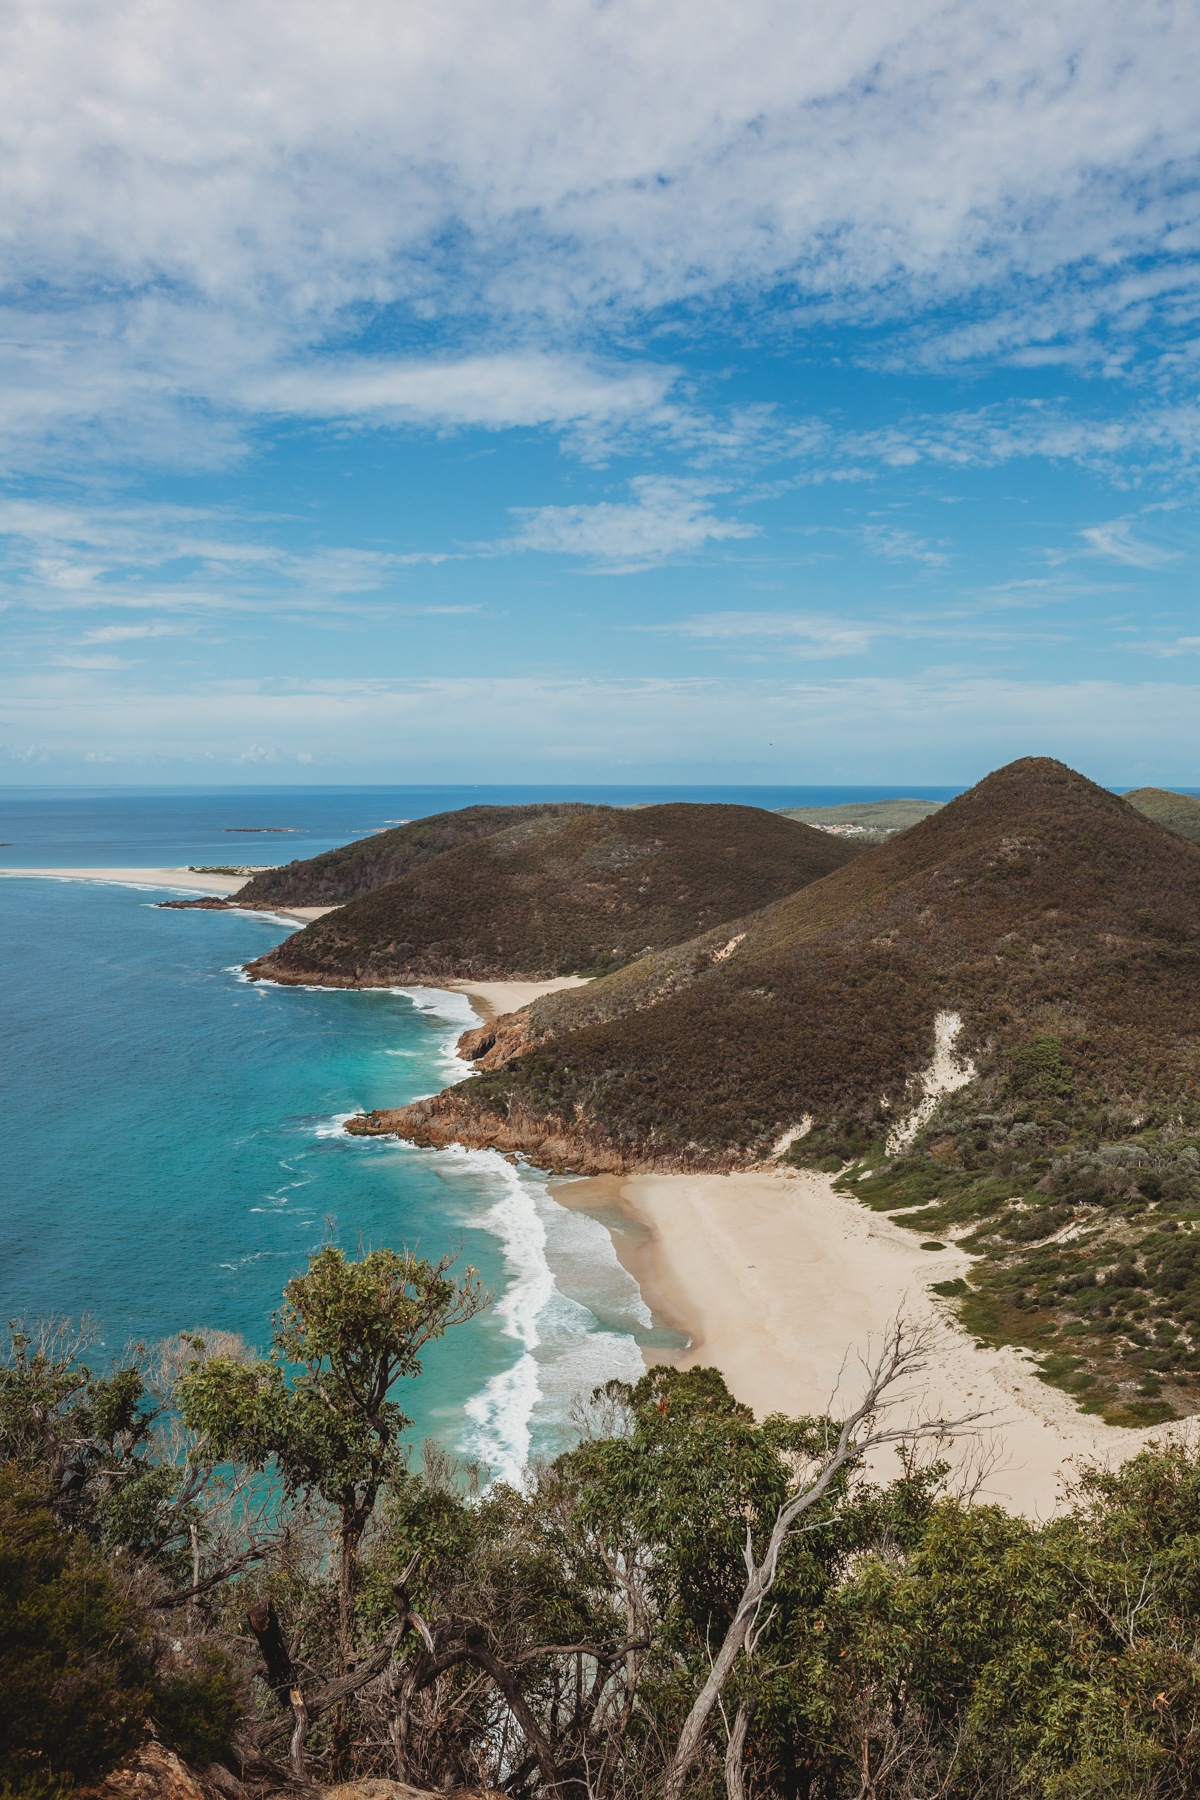 View of Zenith Beach from the top of Mt Tomaree